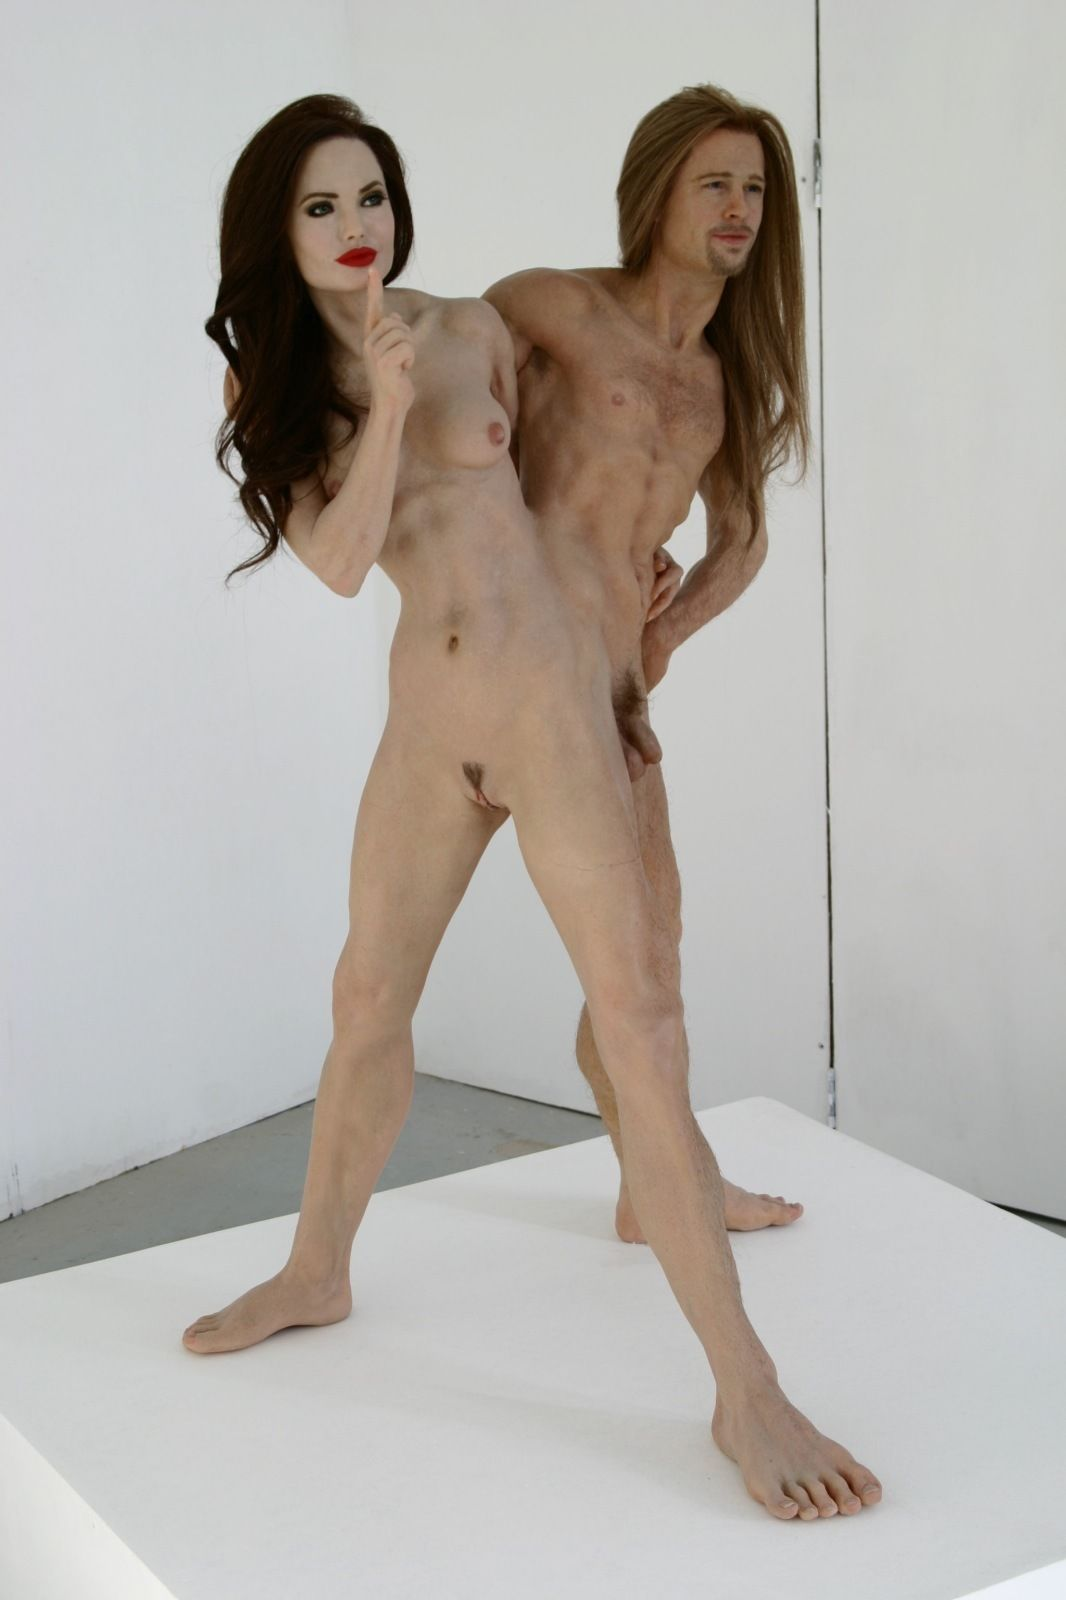 Naked sex brad angelina pitt jolie